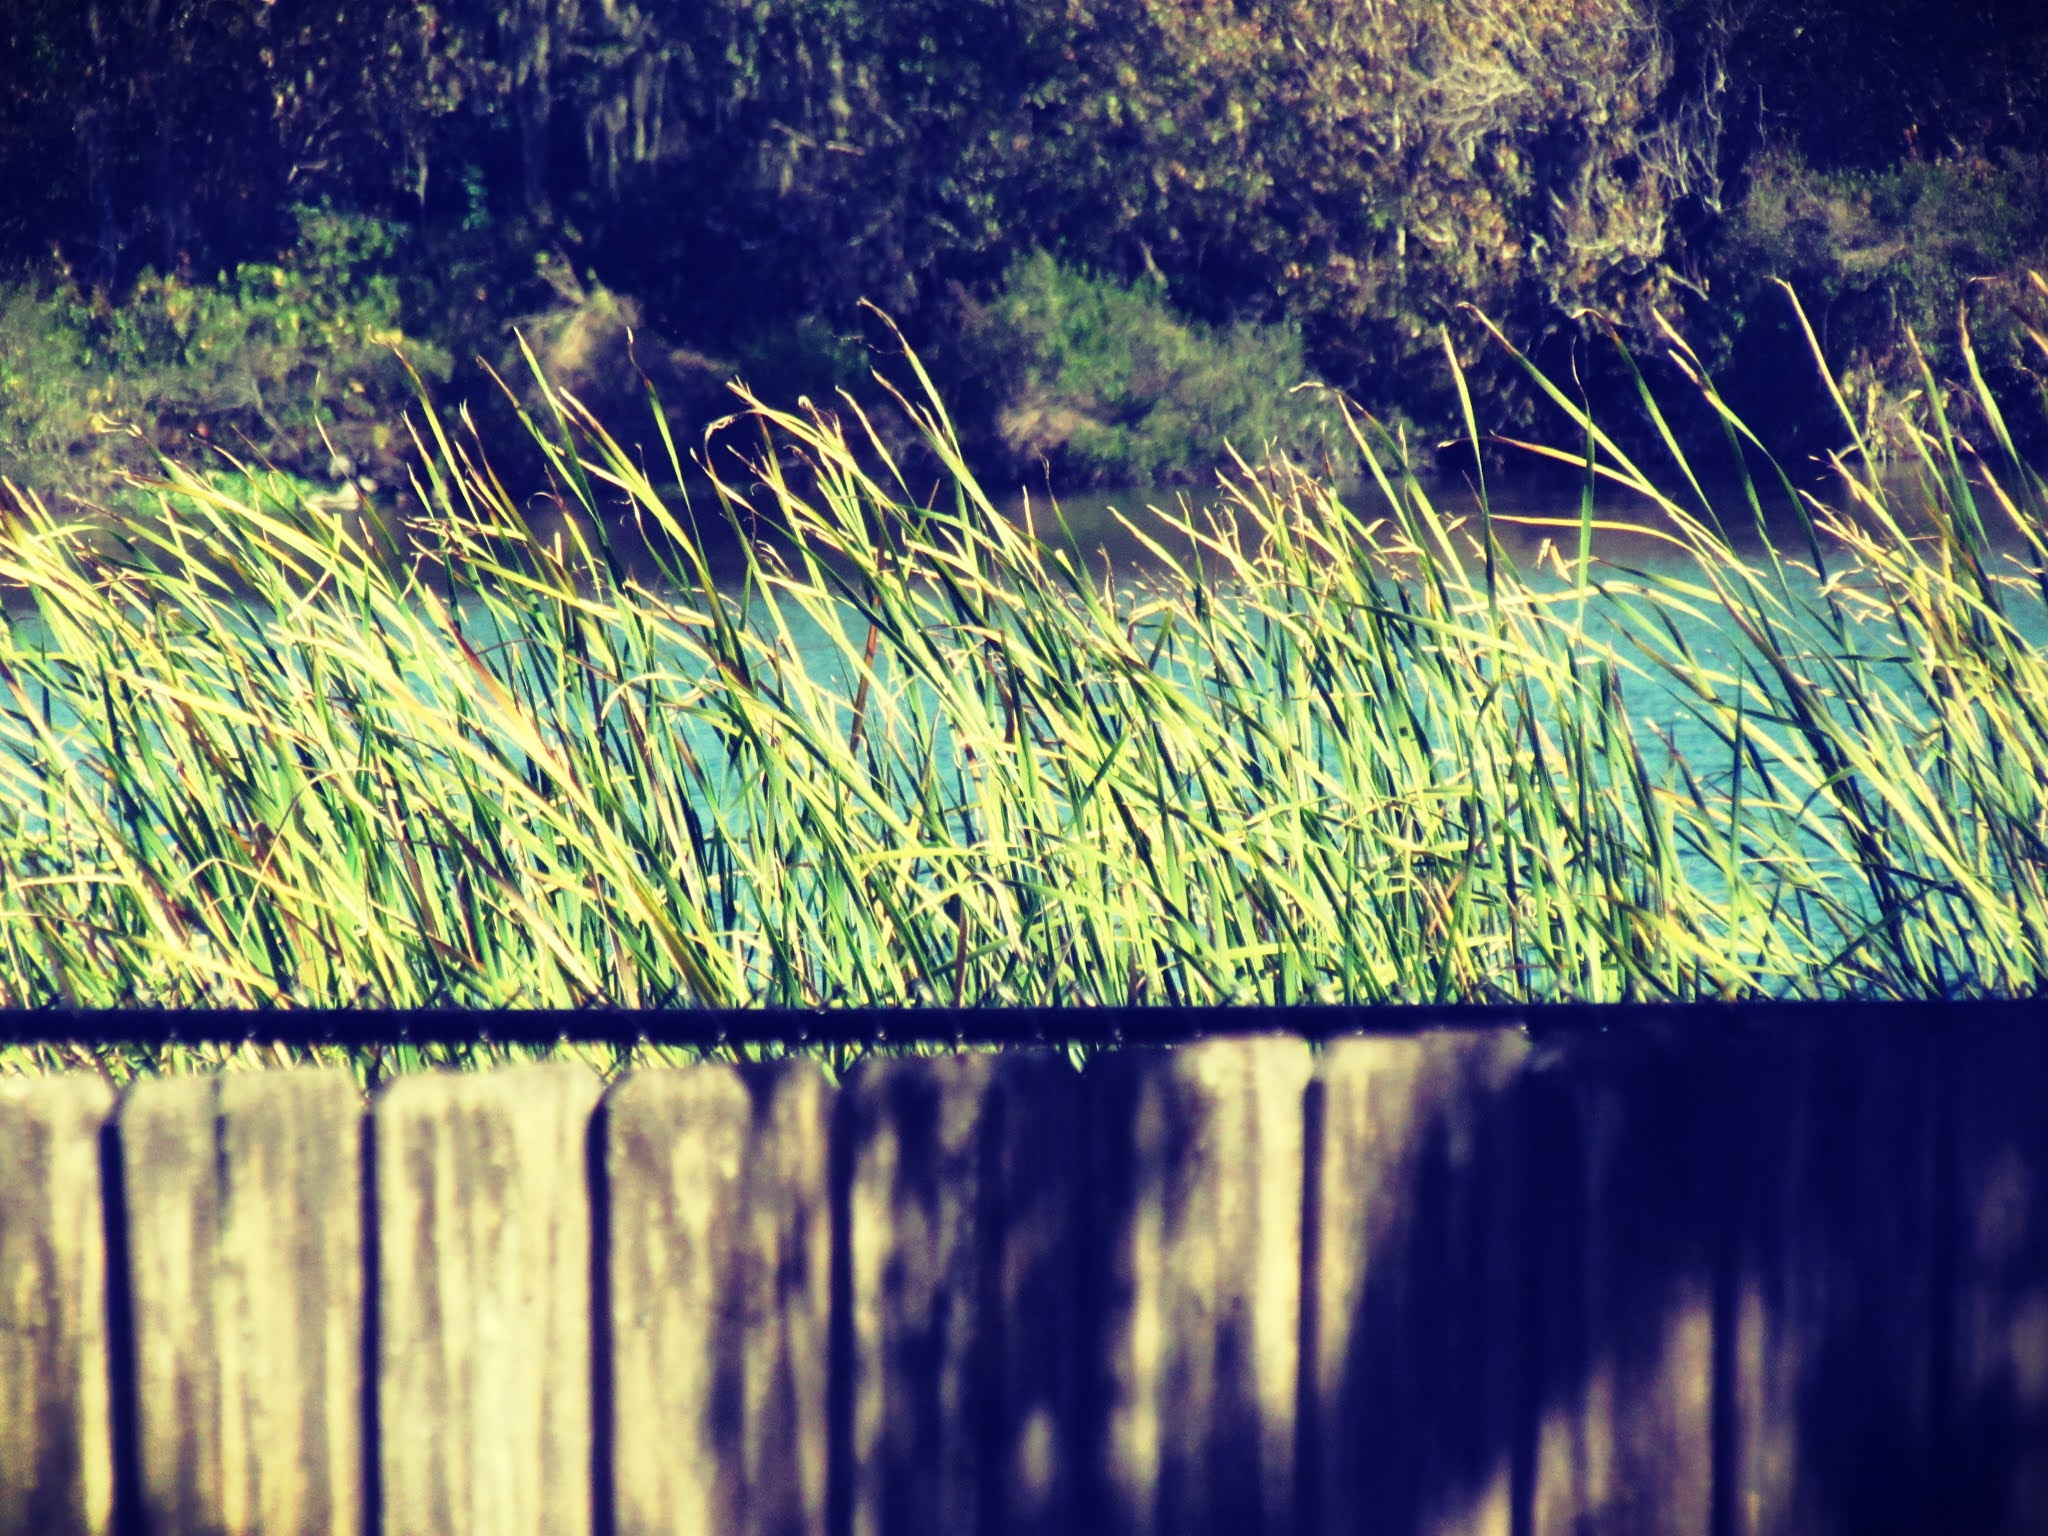 A Florida freshwater lake and bayou, alligator pond, freshwater pond in Florida, Tall sea grasses, wooden fence on the trail